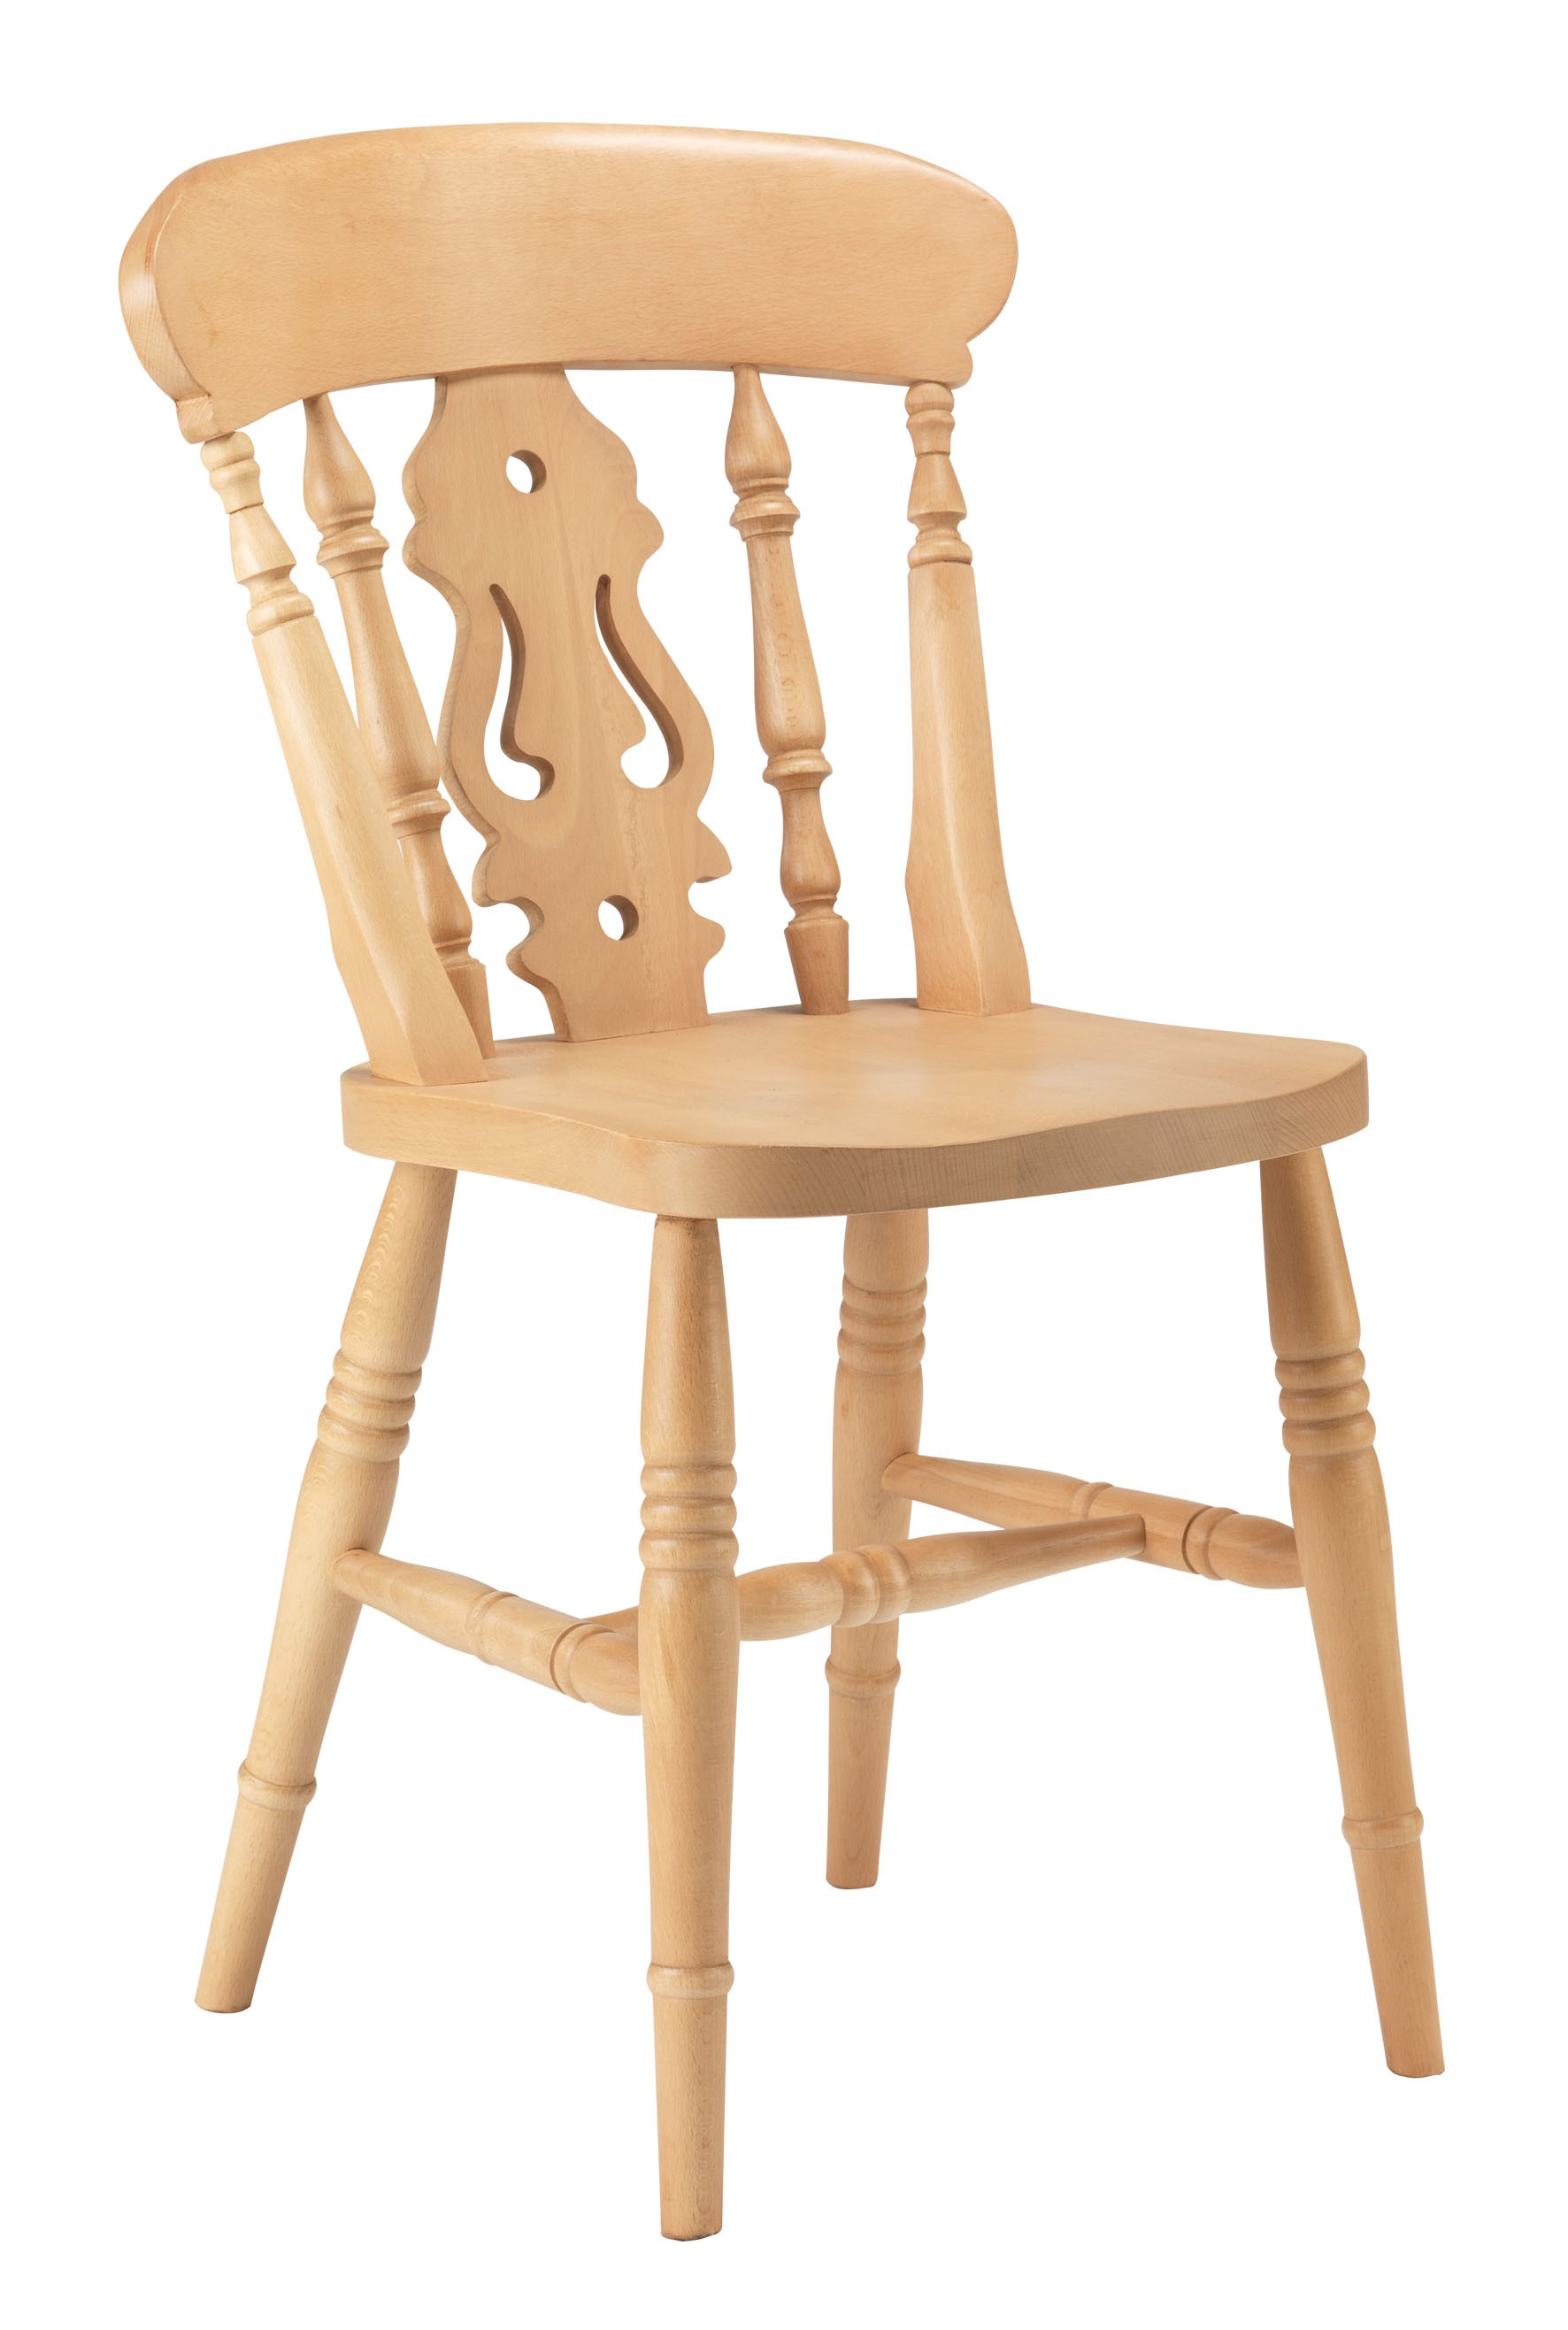 Traditional farmhouse Chairs - Furniture Maker @ Christy Bird\'s